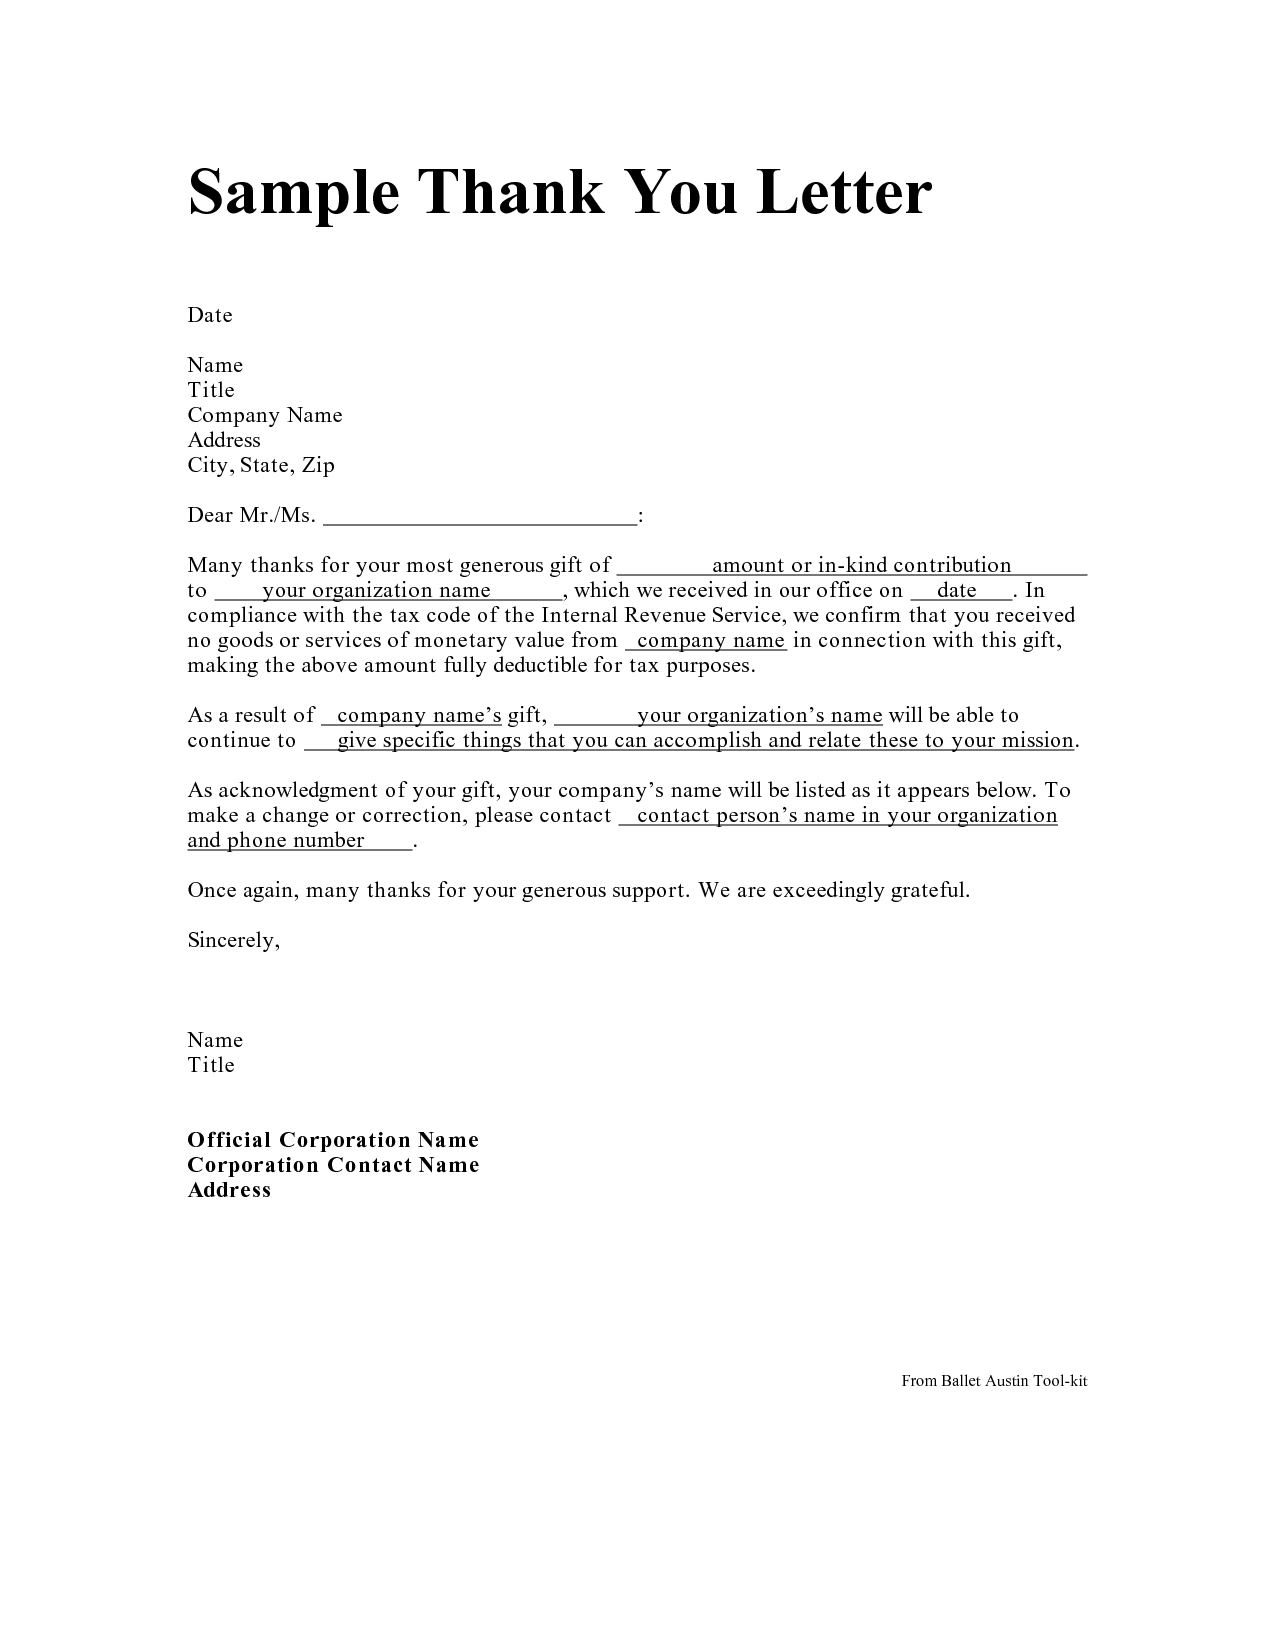 Formal Letter Template - Personal Thank You Letter Personal Thank You Letter Samples